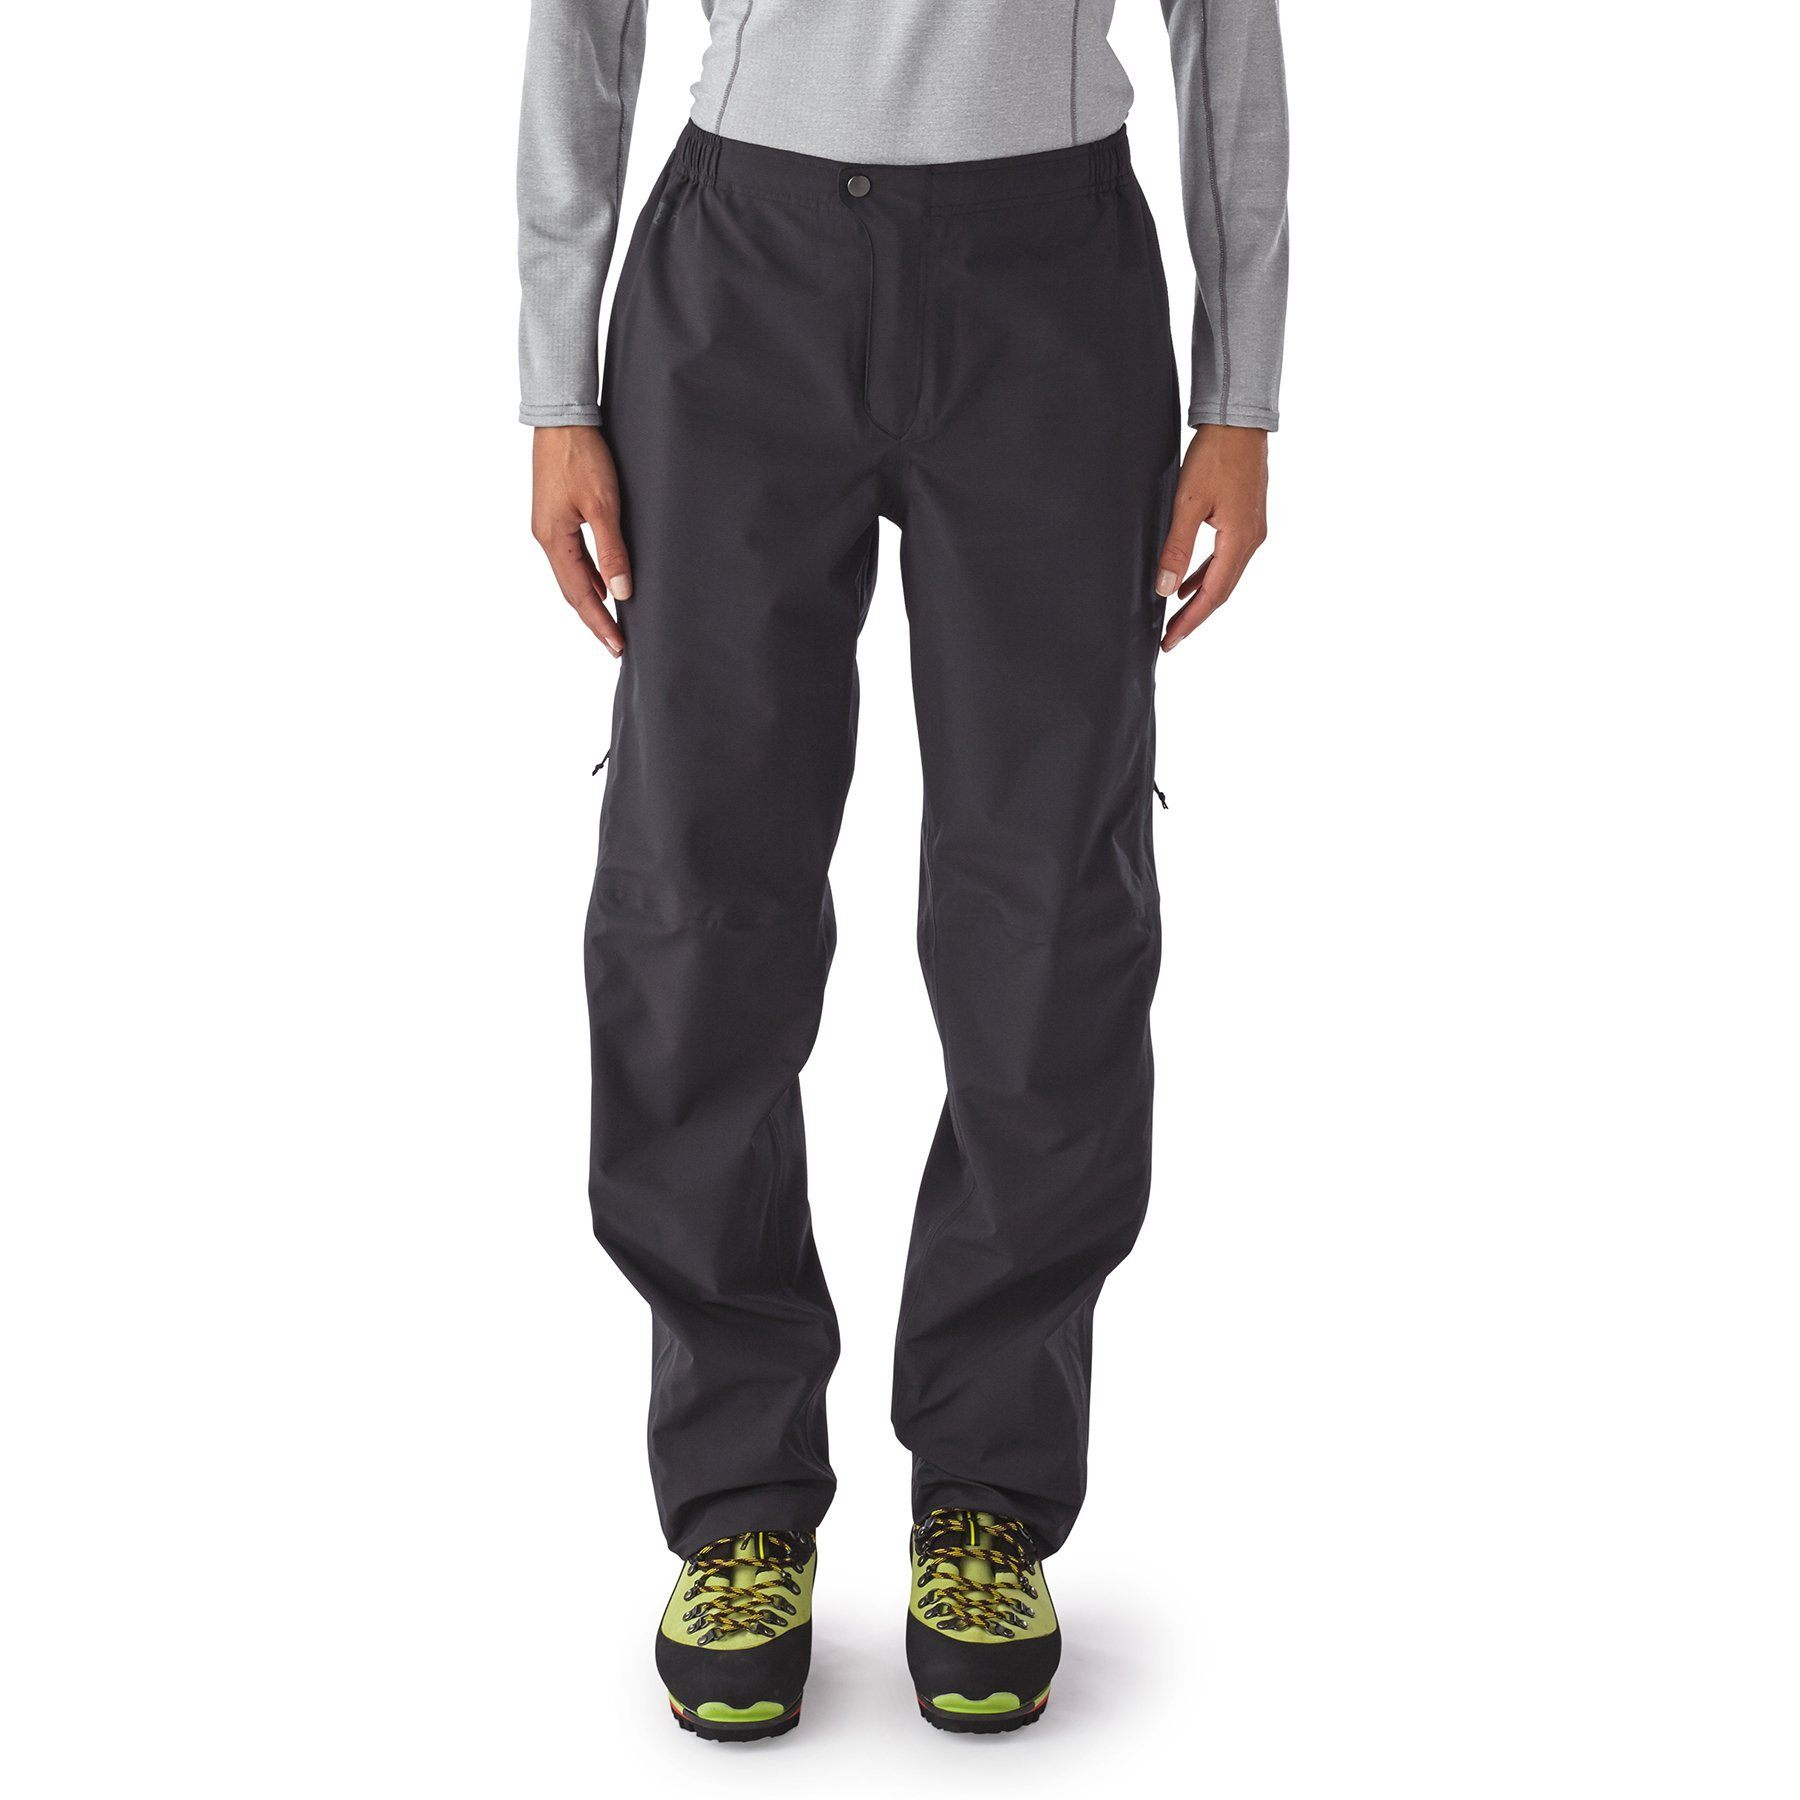 Patagonia - W's Cloud Ridge Pants - 100% Recycled Polyester - Weekendbee - sustainable sportswear